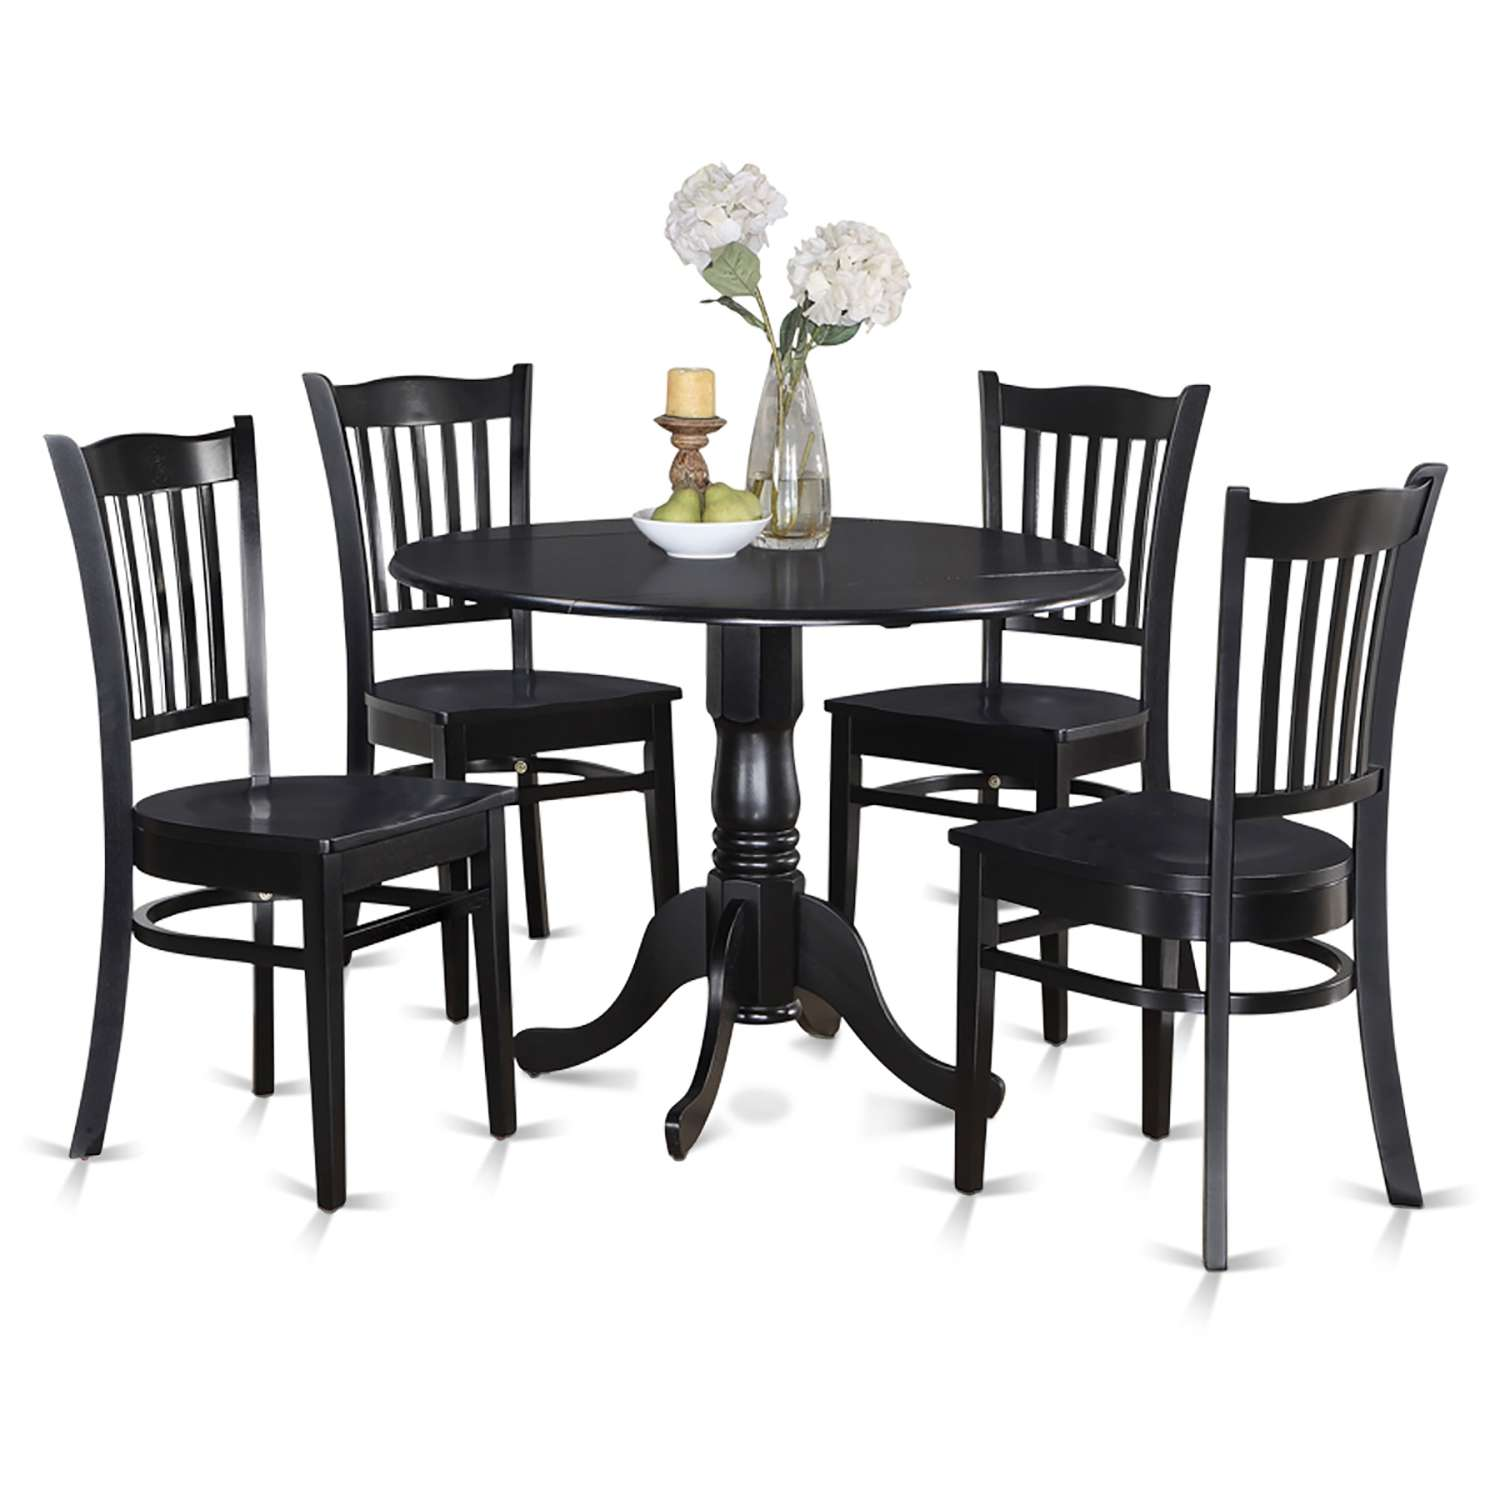 Awe Inspiring East West Furniture Dlgr5 Blk W Caraccident5 Cool Chair Designs And Ideas Caraccident5Info